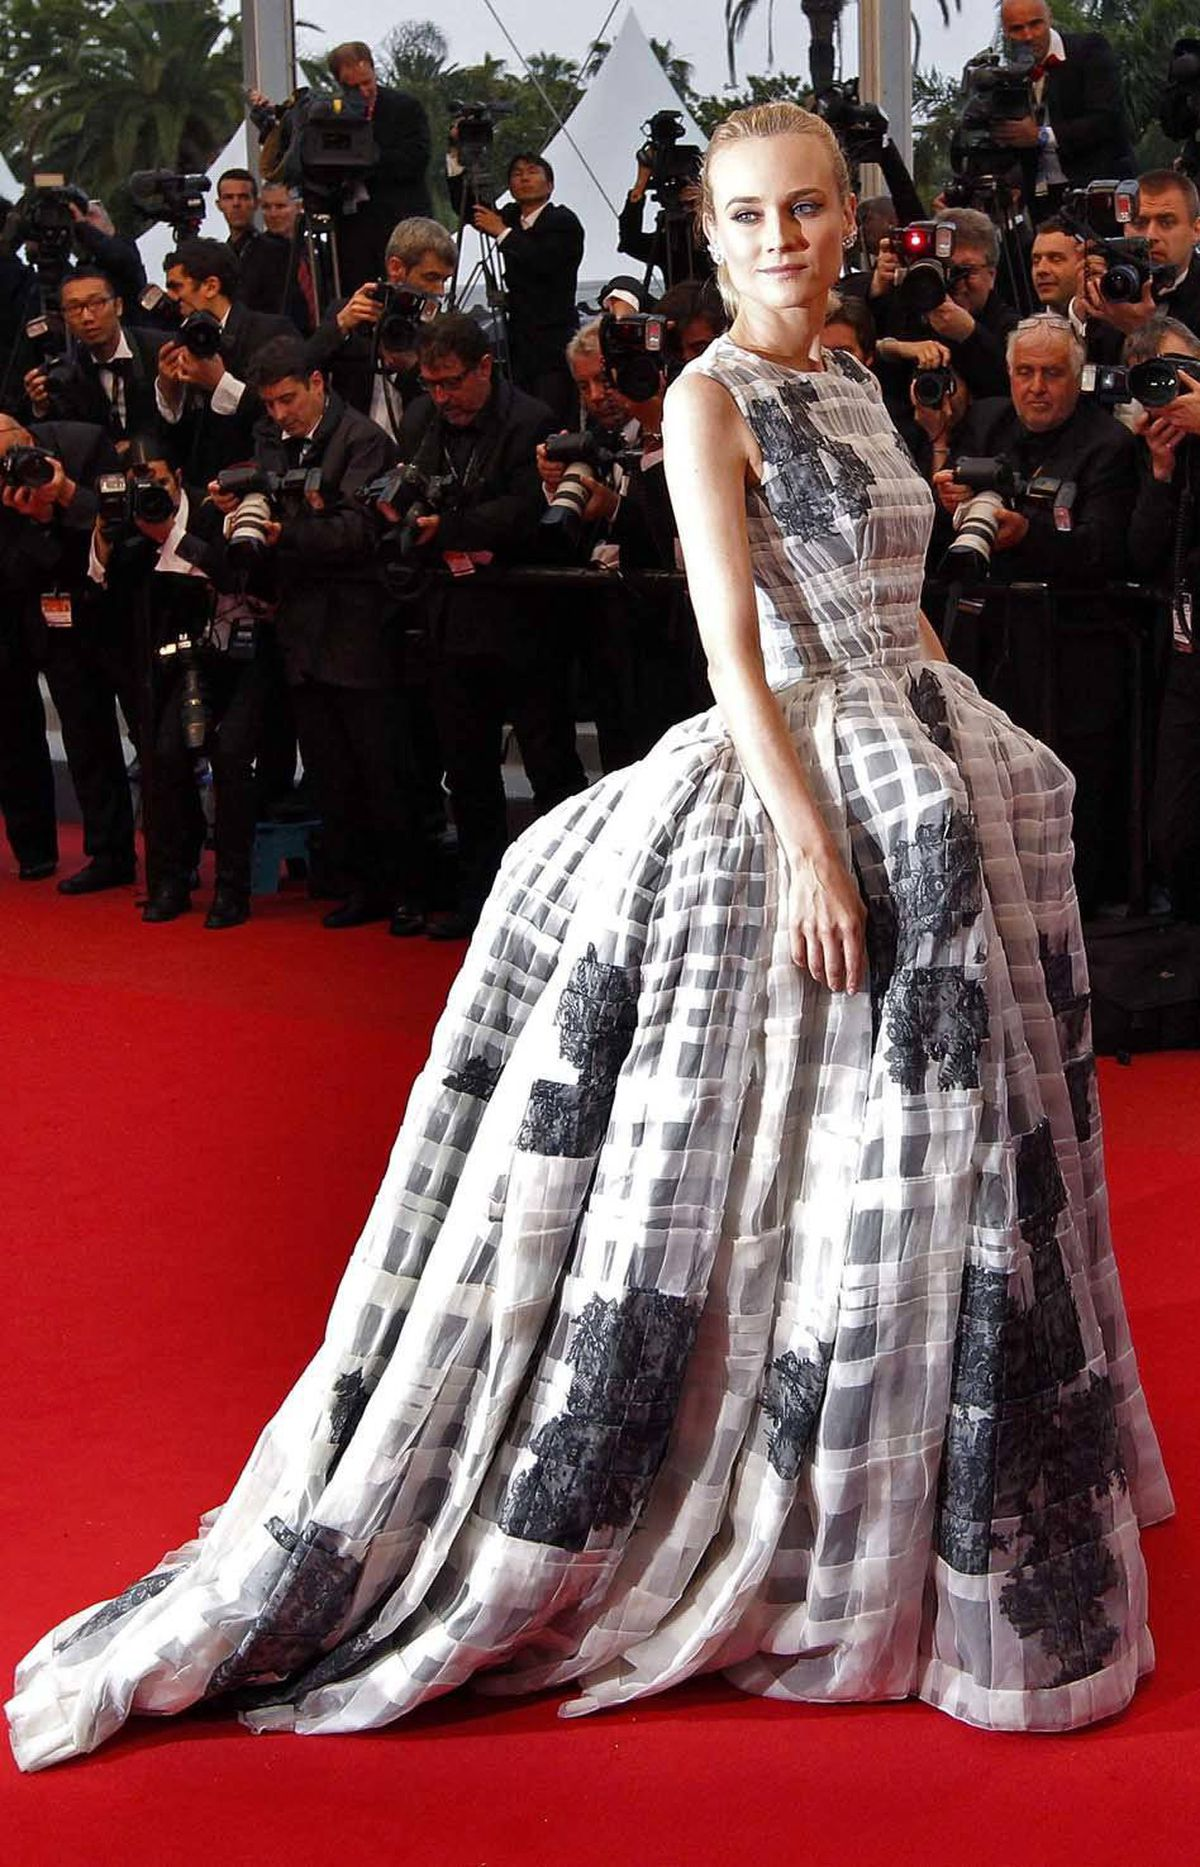 Cannes jury member Diane Kruger hits the Cannes red carpet last week in a dress that hardly resembles at all something Marie Antoinette would have worn.